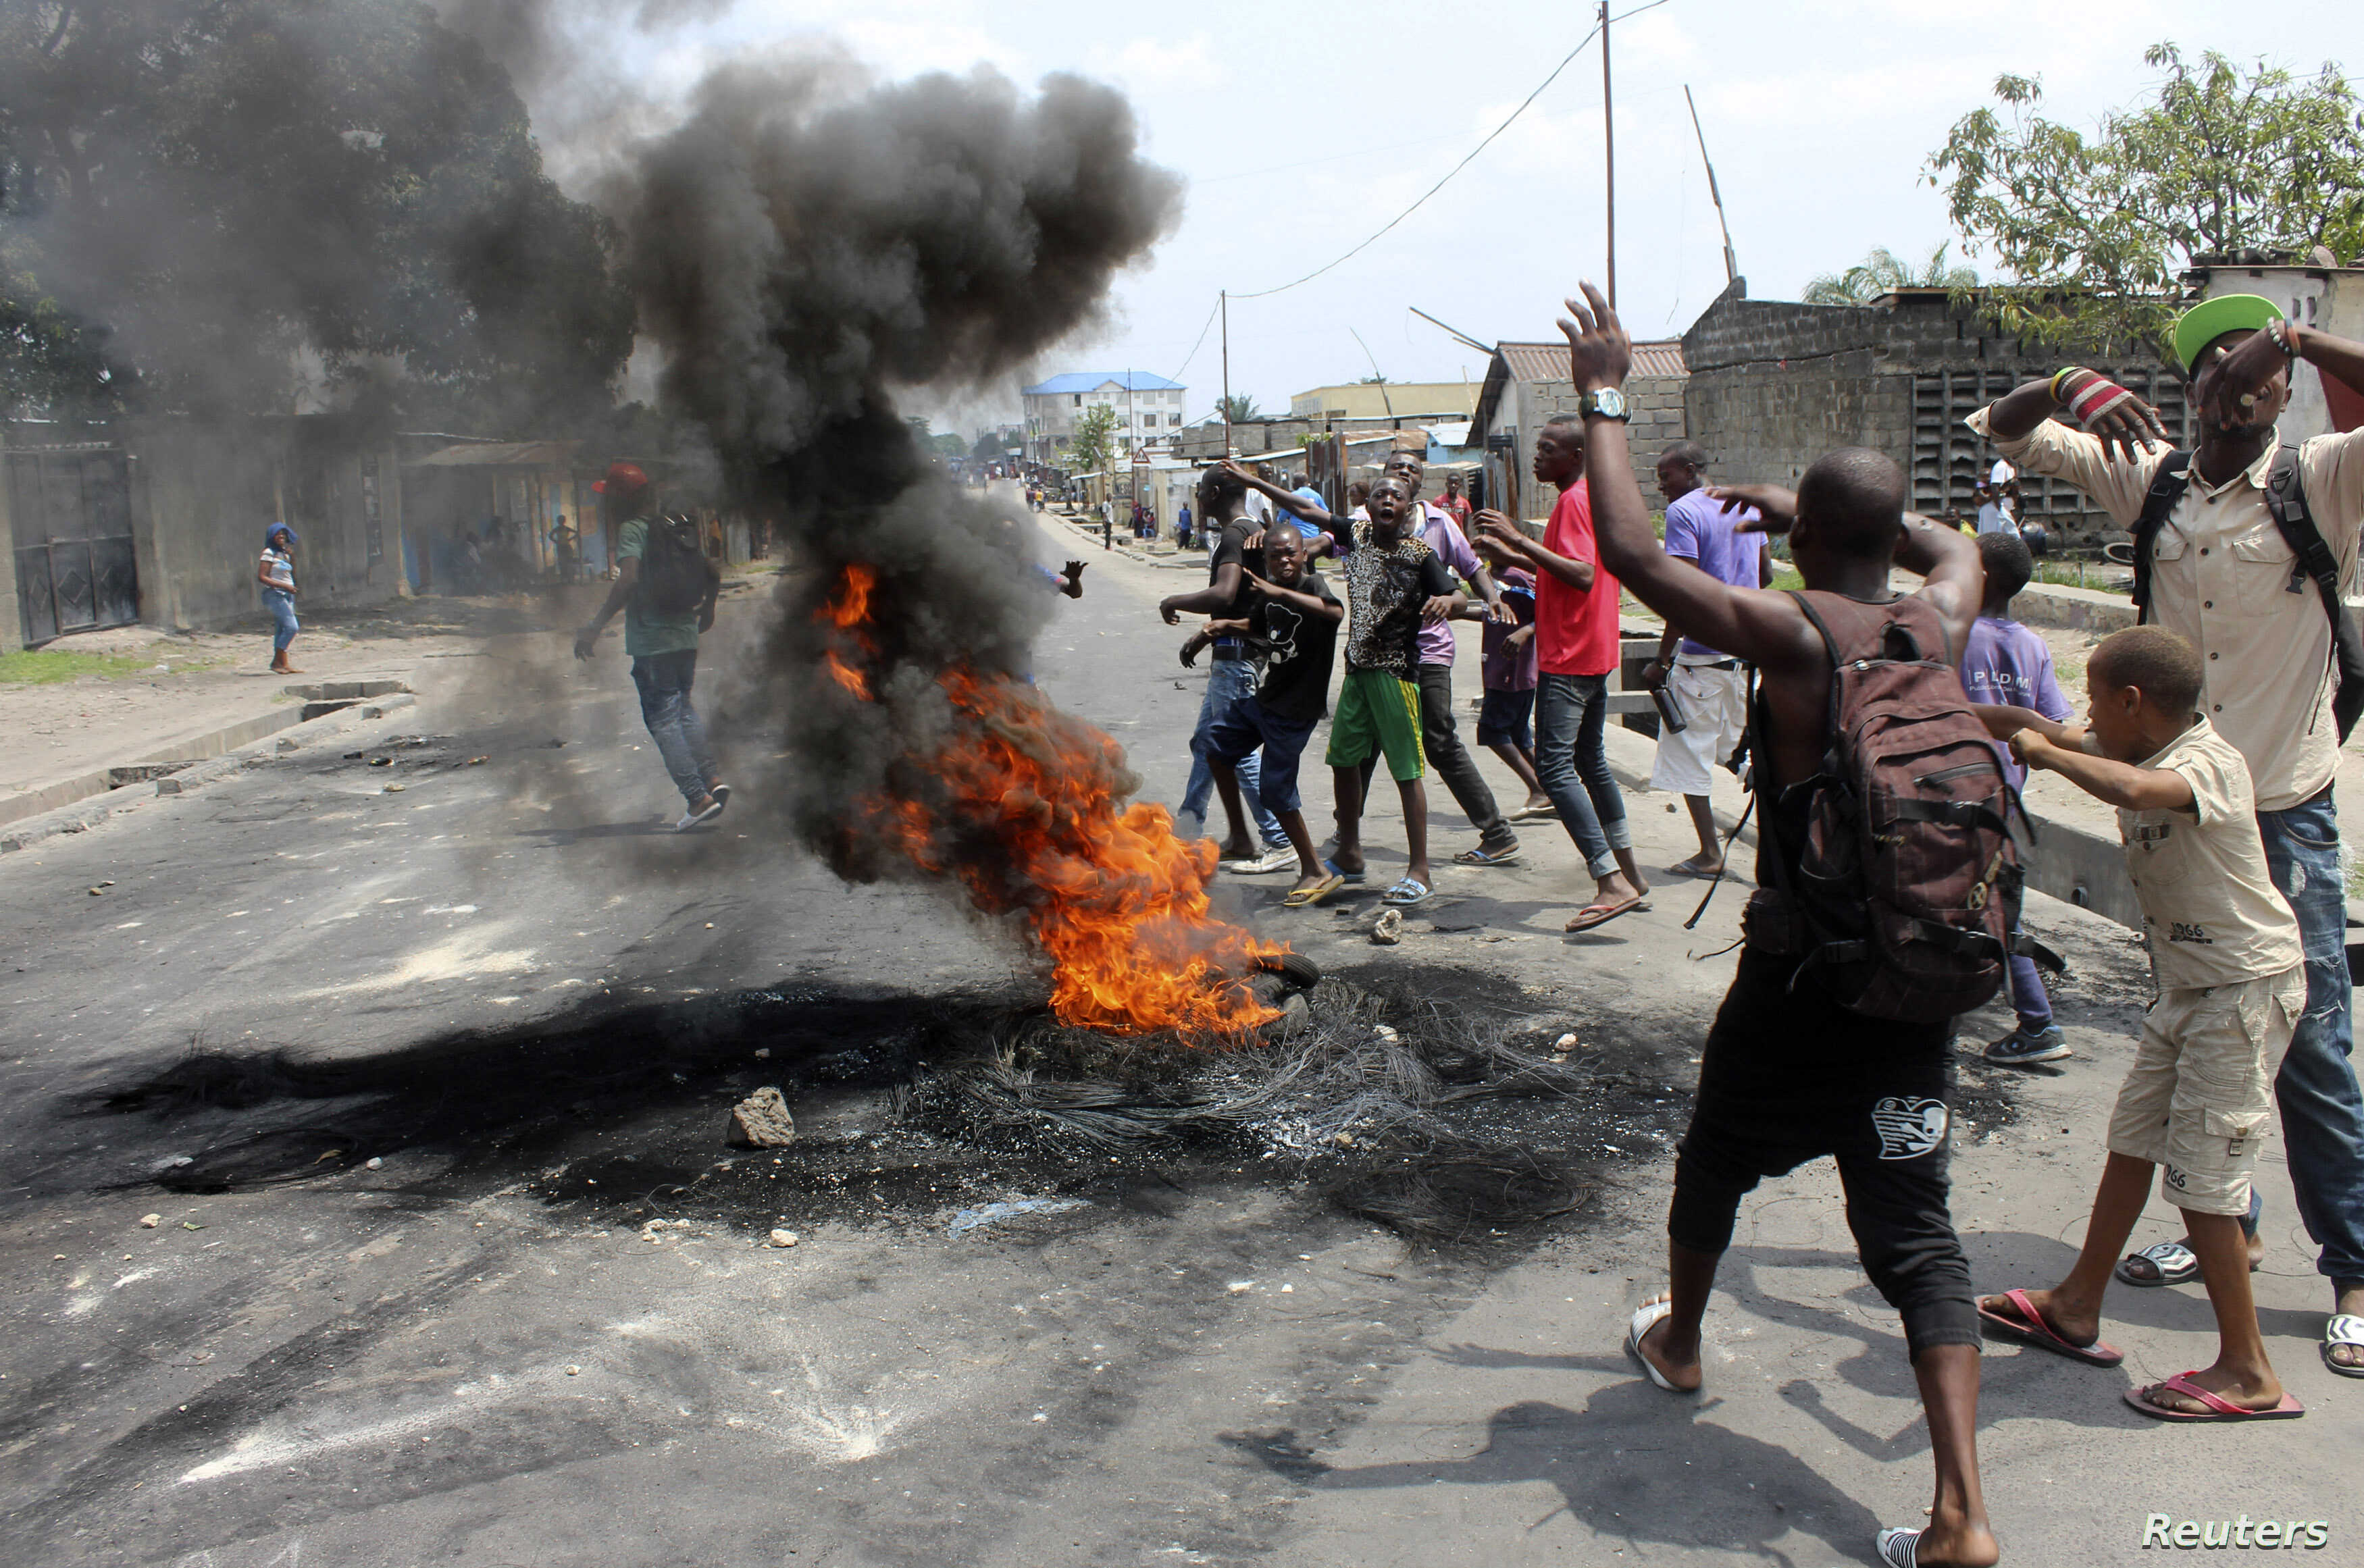 Demonstrators burn tyres to set up barricades during a protest in the Democratic Republic of Congo's capital Kinshasa January 20, 2015. Protests erupted for a second day in Democratic Republic of Congo on Tuesday over proposed changes to an election ...